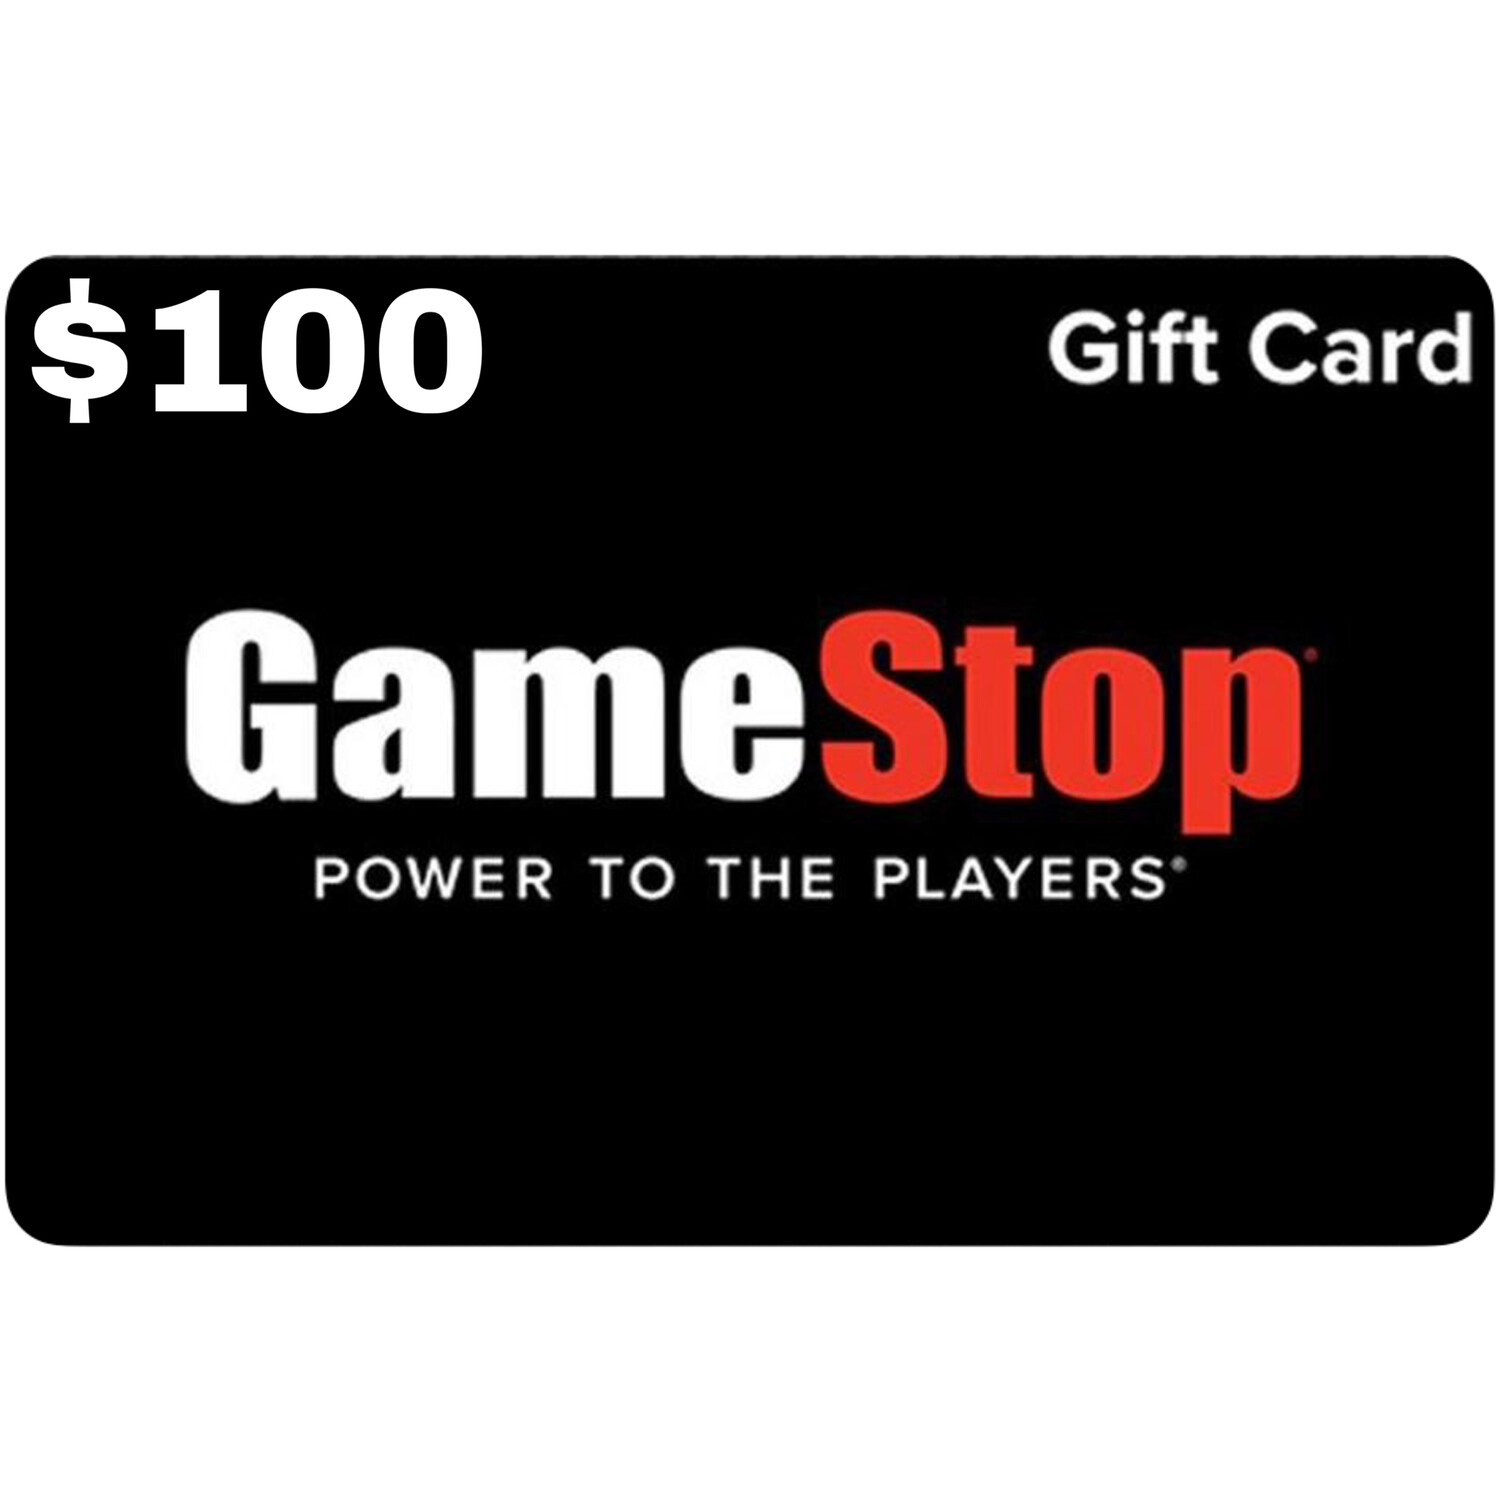 Gamestop Gift Card $100